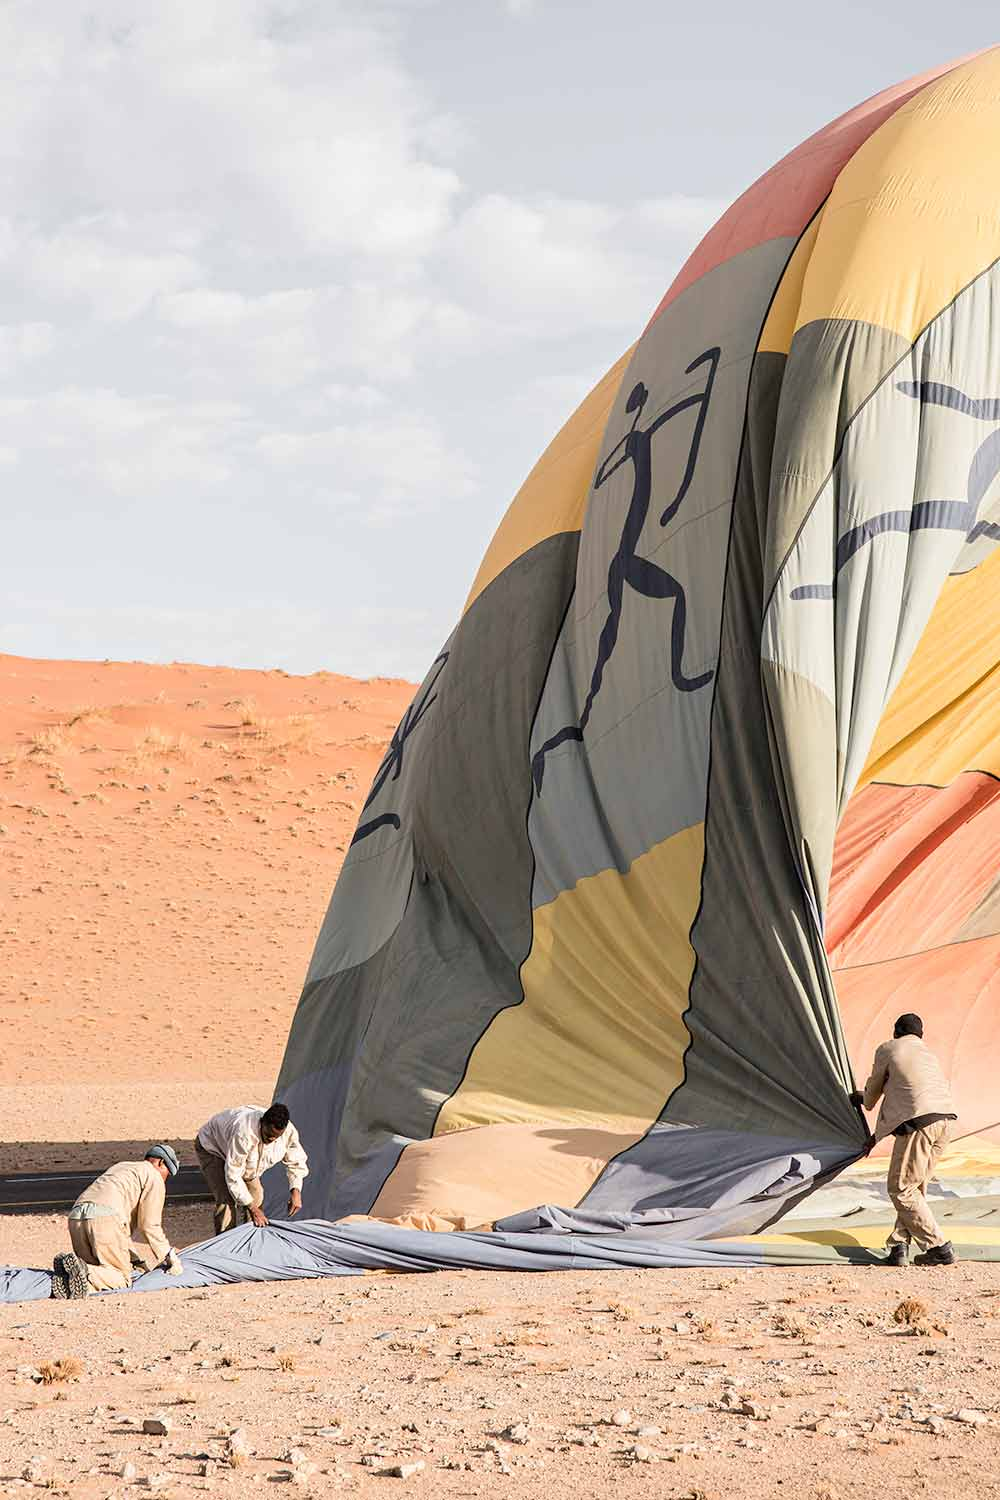 Packing up the air balloon after enjoying a one hour scenic flight over the Sossusvlei dunes.